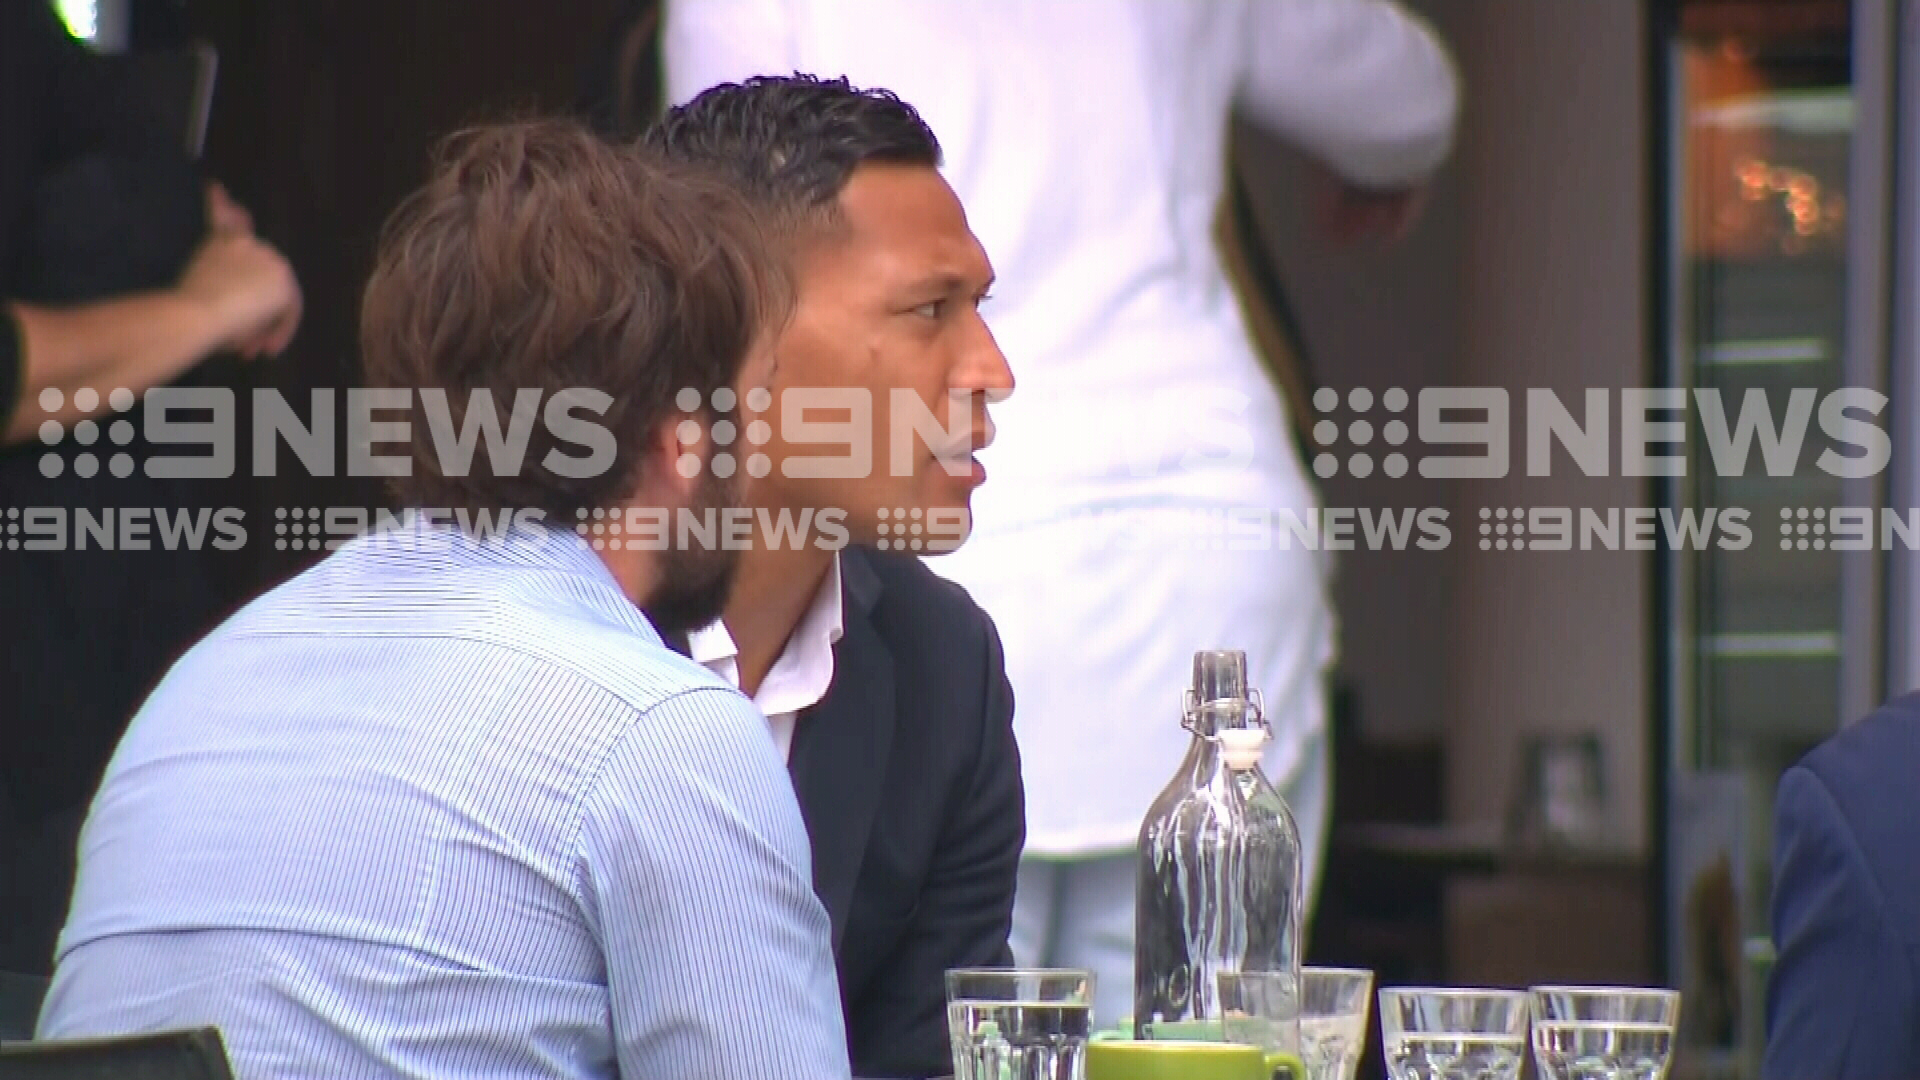 Israel Folau filmed at a cafe.